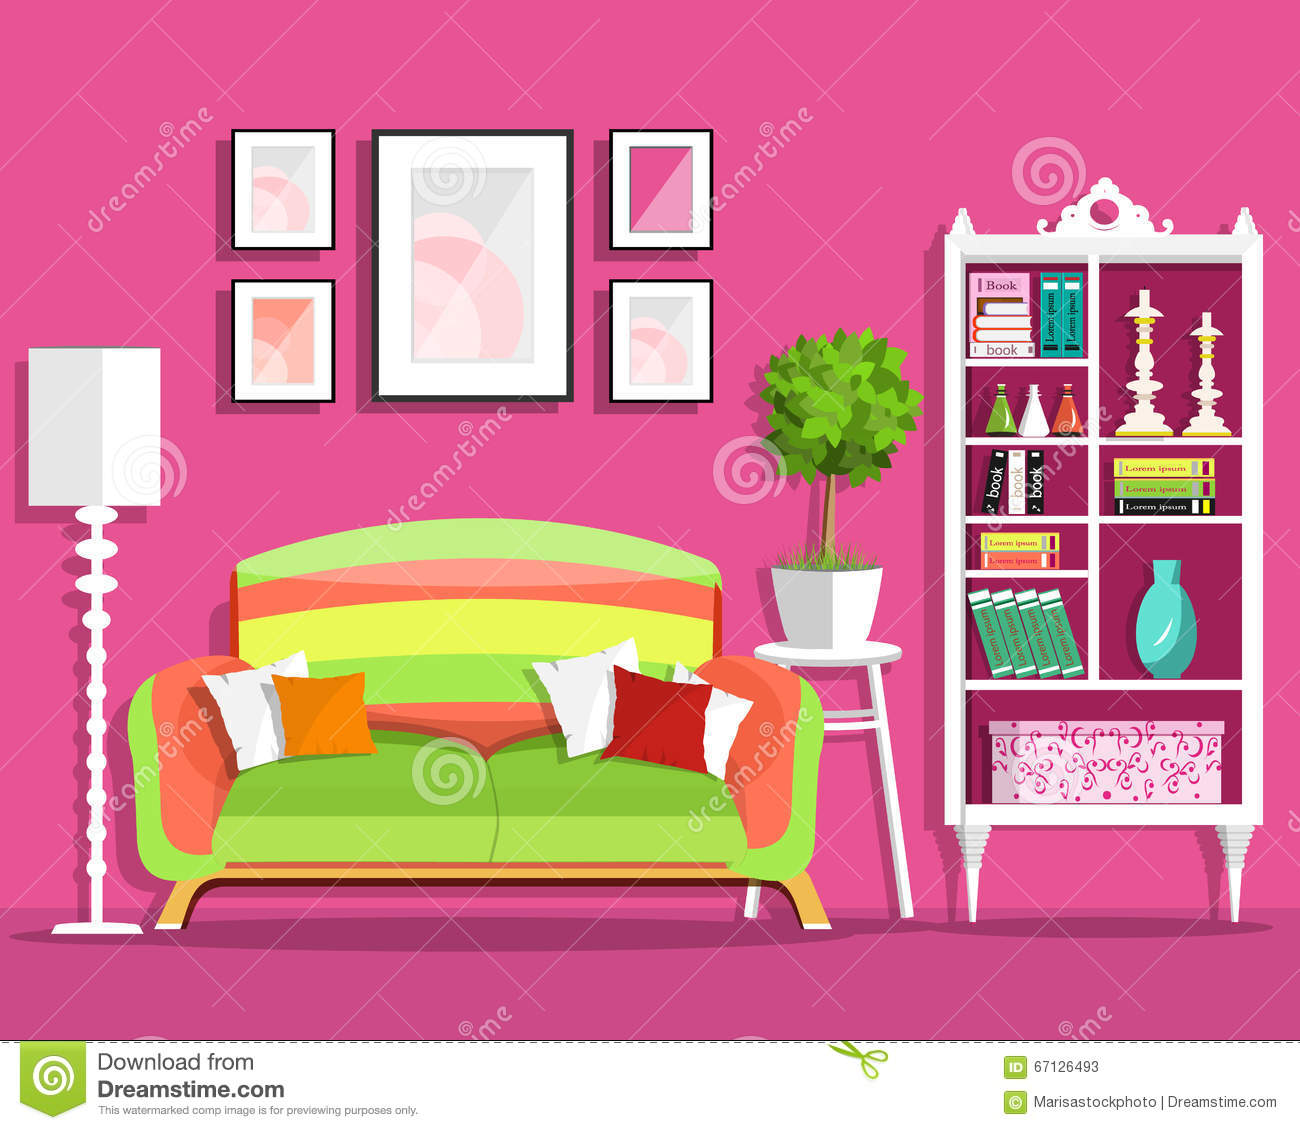 Cute graphic living room interior design with furniture for Design my room free